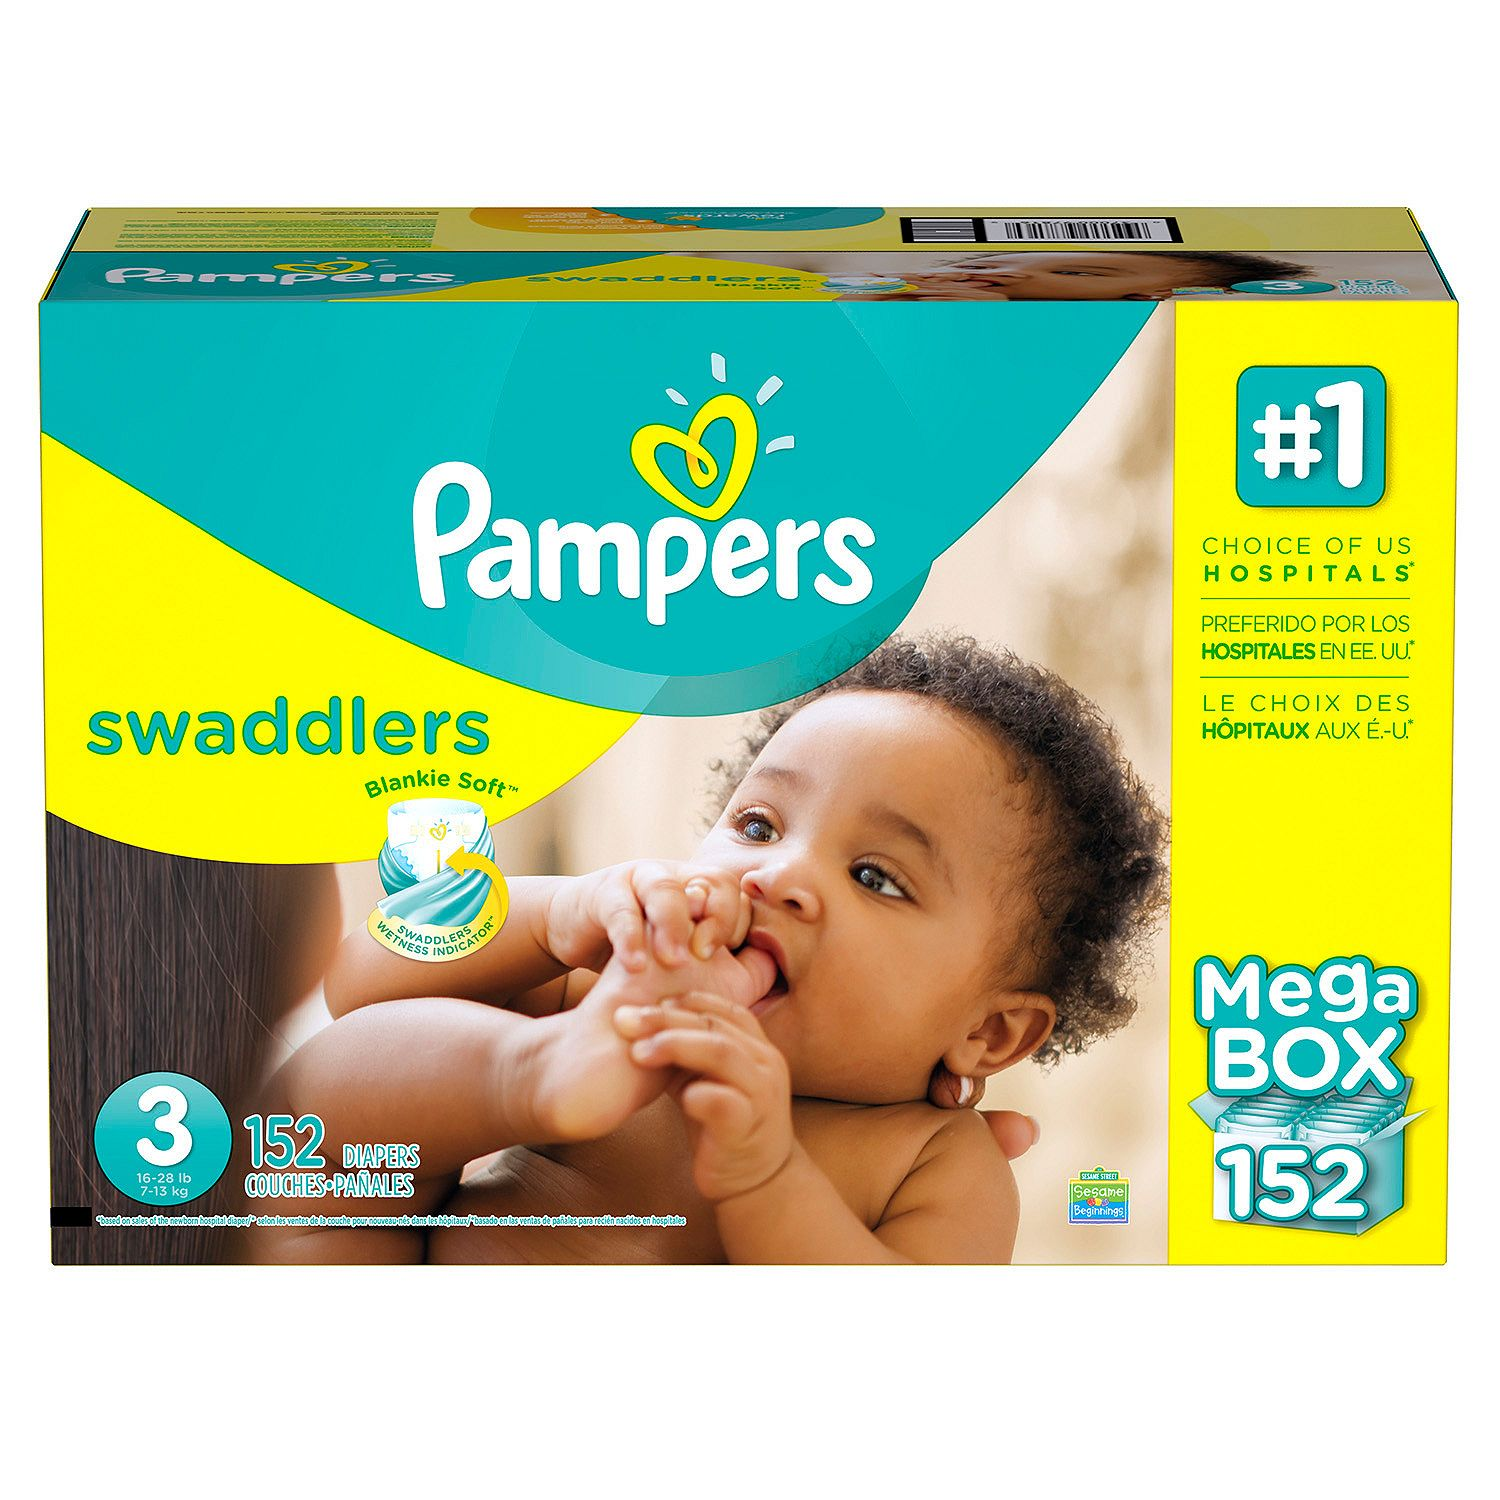 Pampers swaddlers size newborn weight